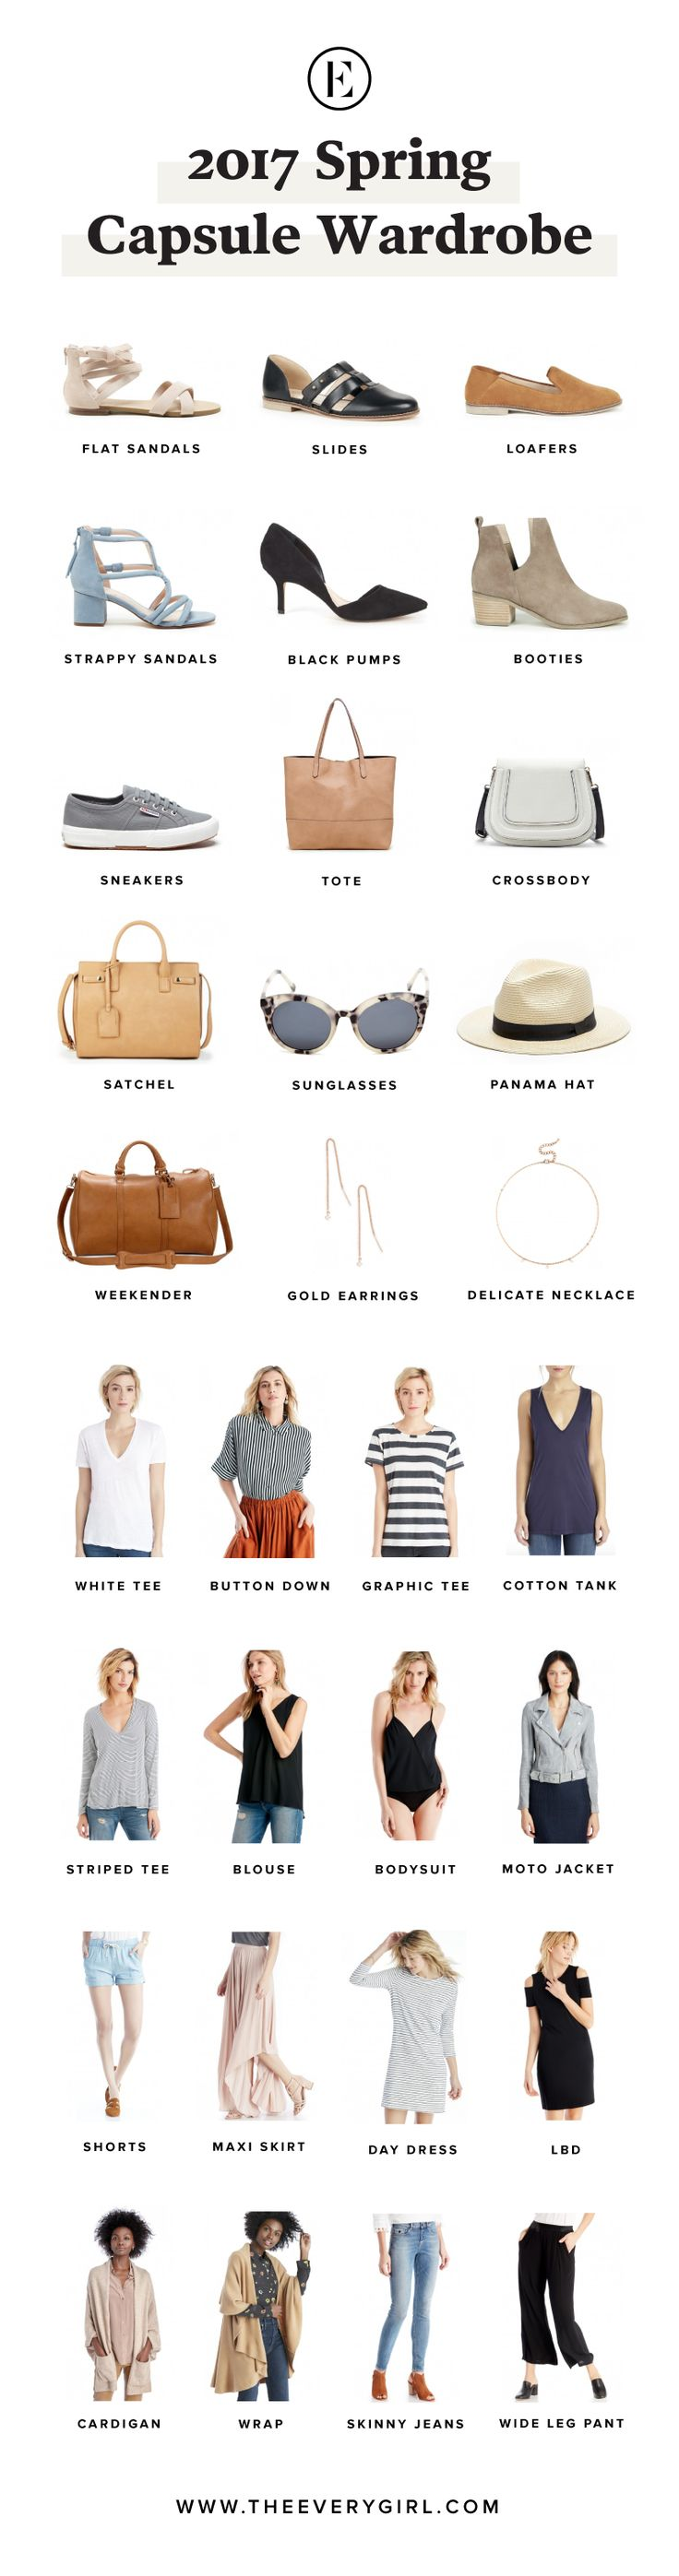 Our 2017 Spring Capsule Wardrobe A Giveaway to @solesociety ! #theeverygirl